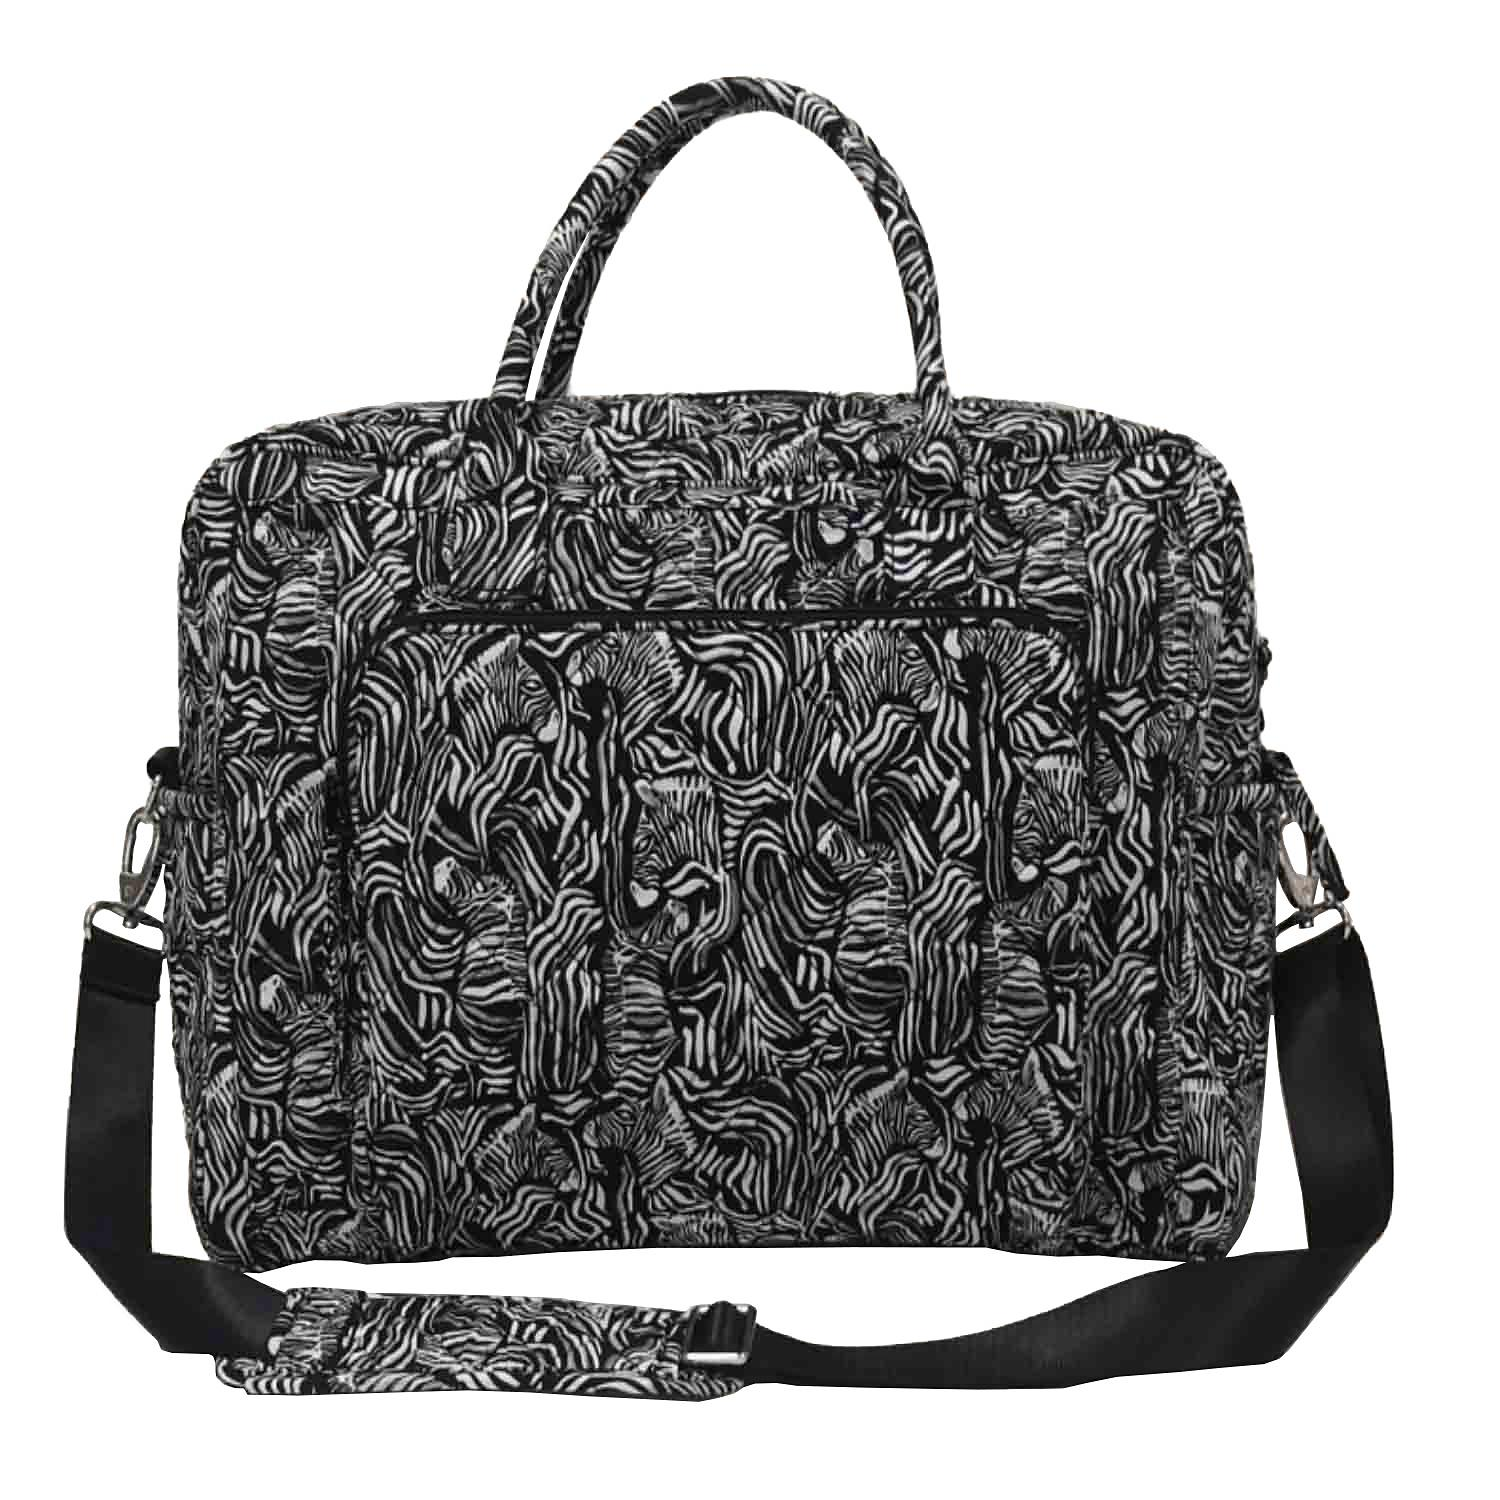 Member's Mark Quilted Travel Tote in Zebra